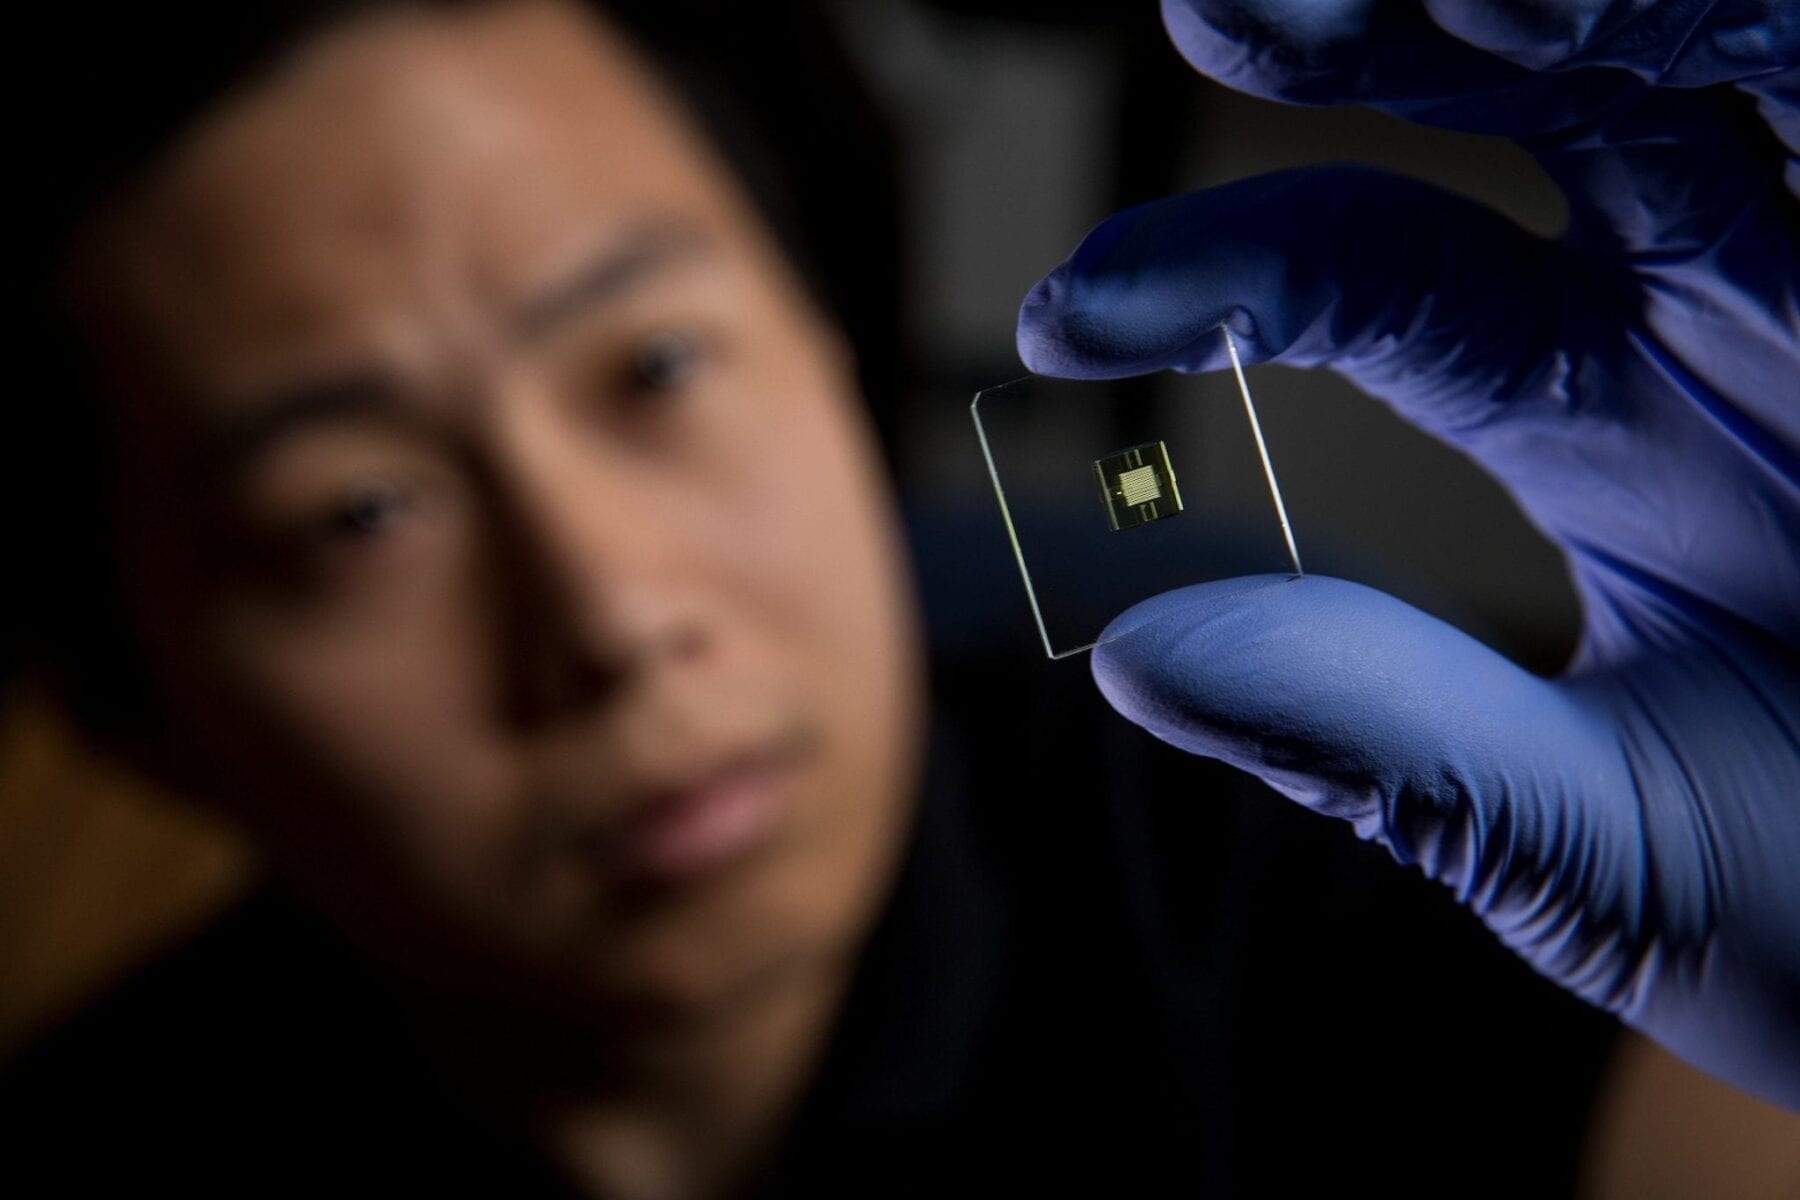 First 3D printed truly microfluidic lab-on-a-chip device